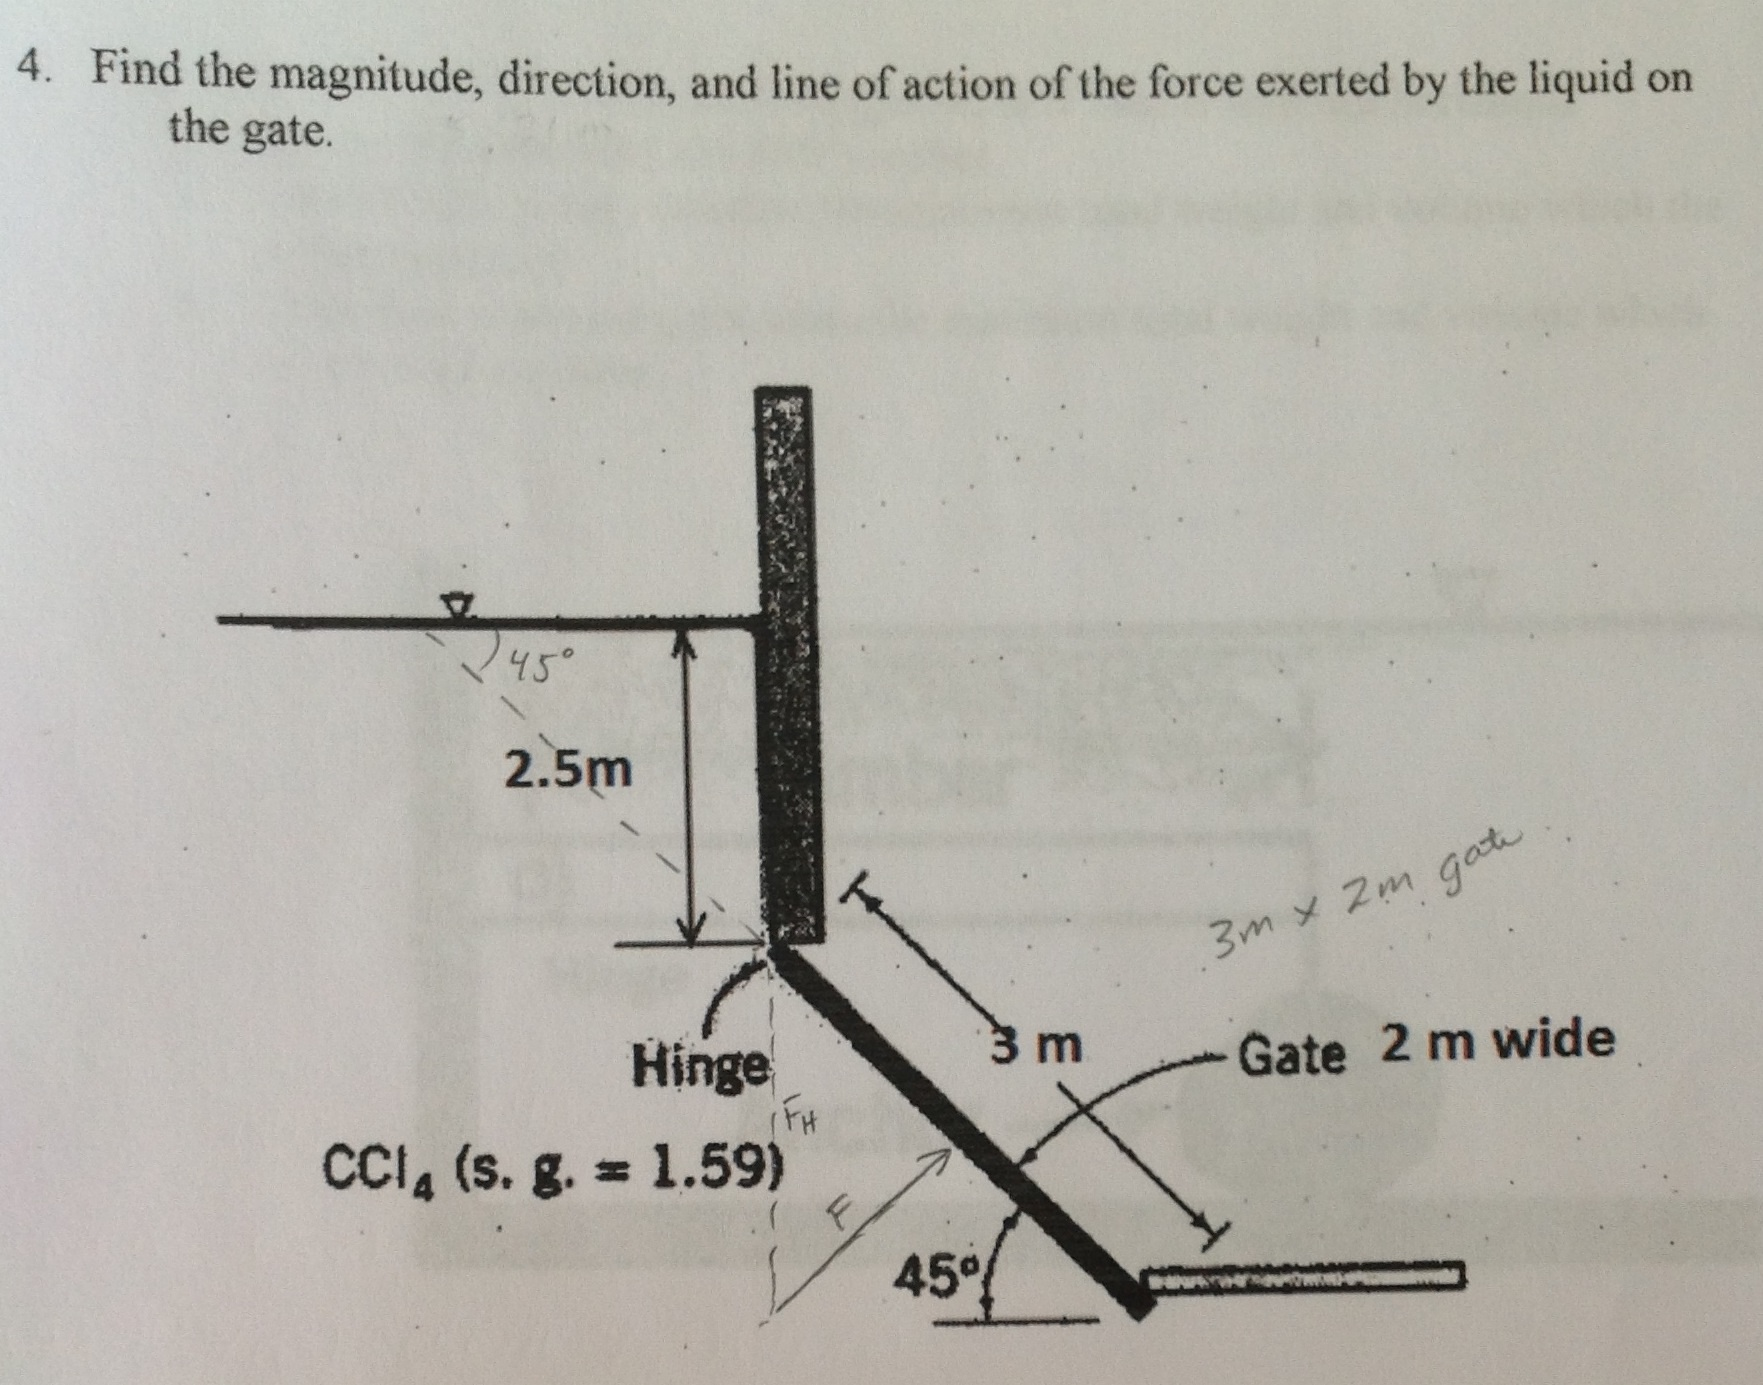 Find the magnitude, direction, and line of action